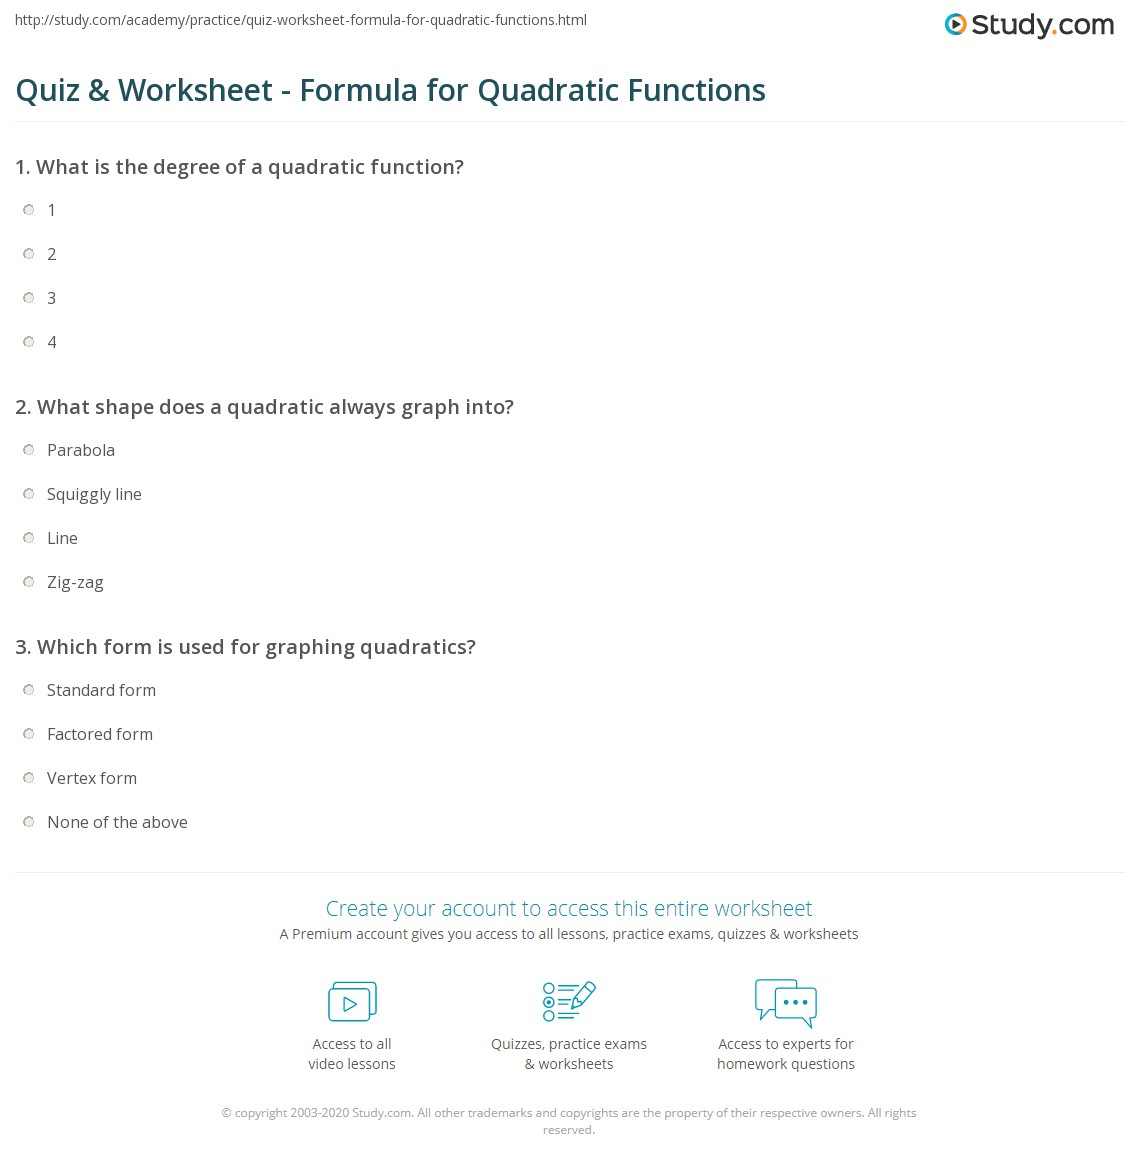 Quiz & Worksheet - Formula for Quadratic Functions | Study.com